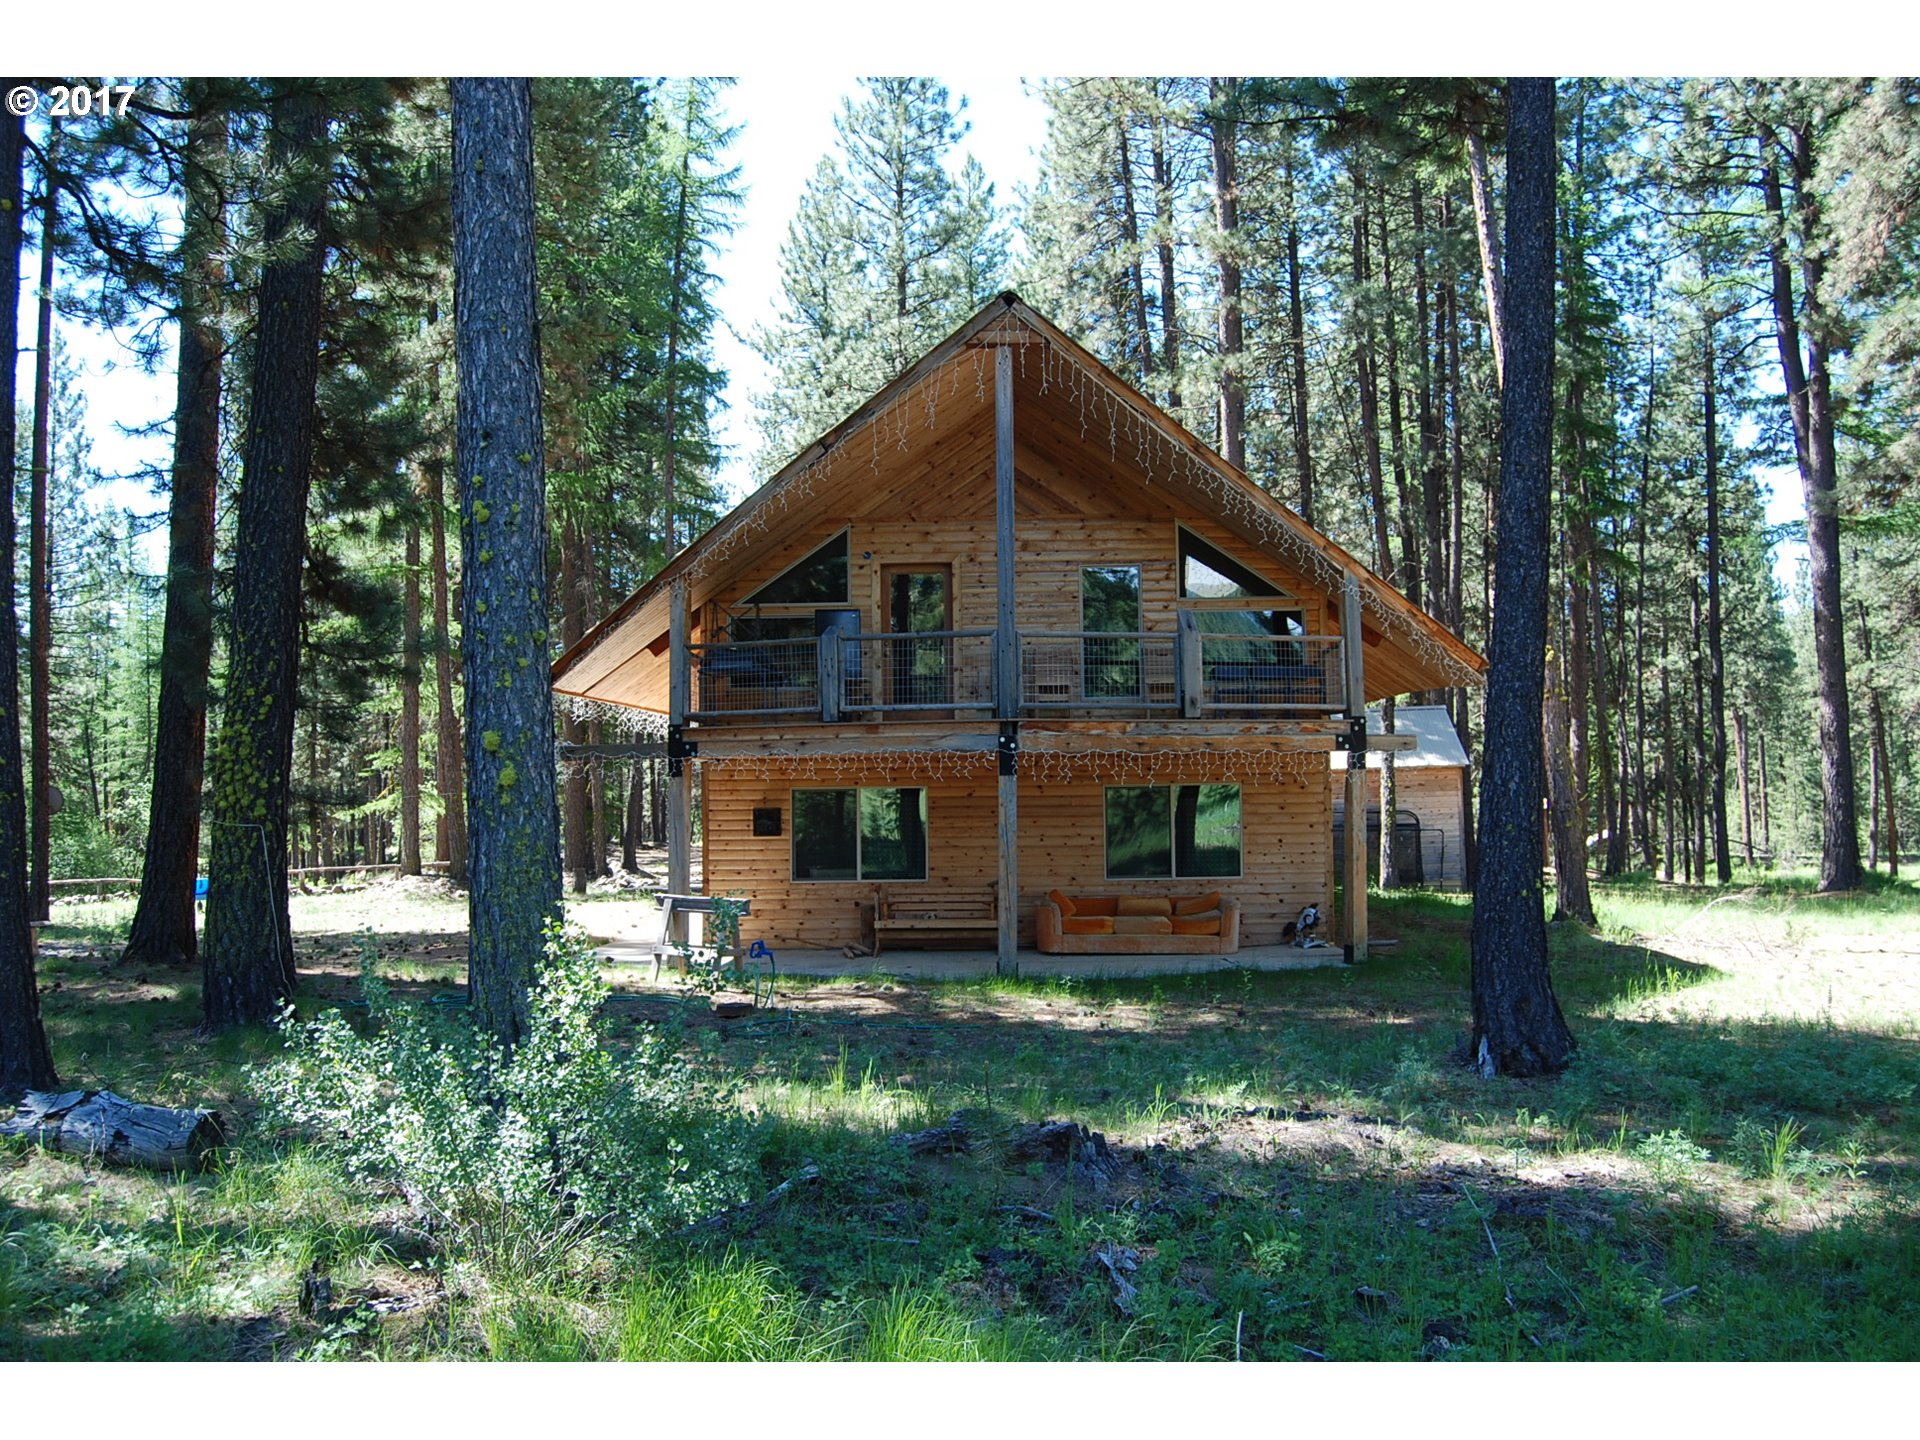 10 MOUNTAIN VIEW LN, Sumpter, OR 97877